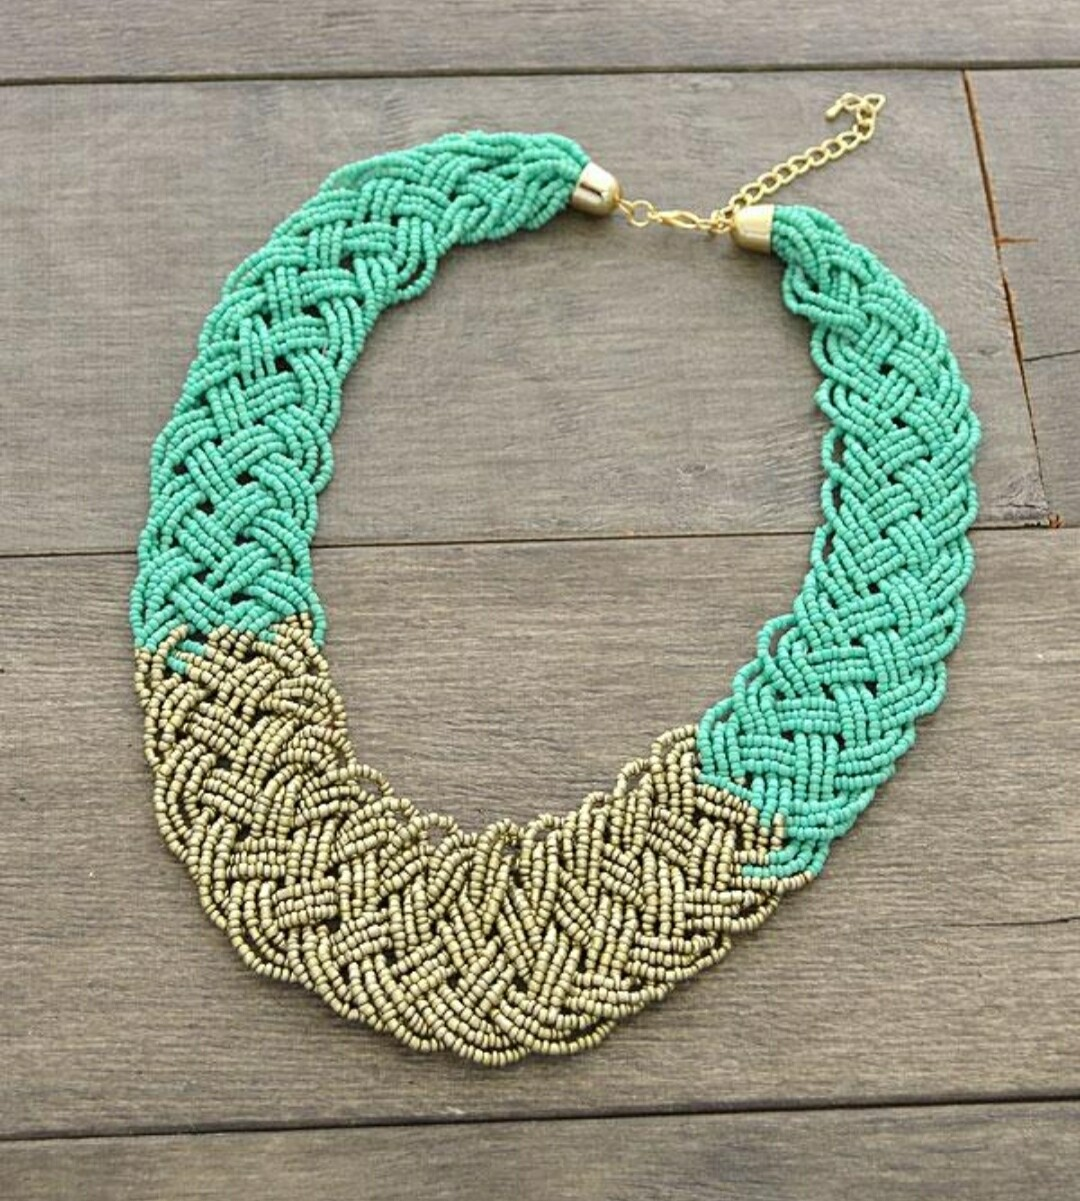 Turquoise & Gold Neclace